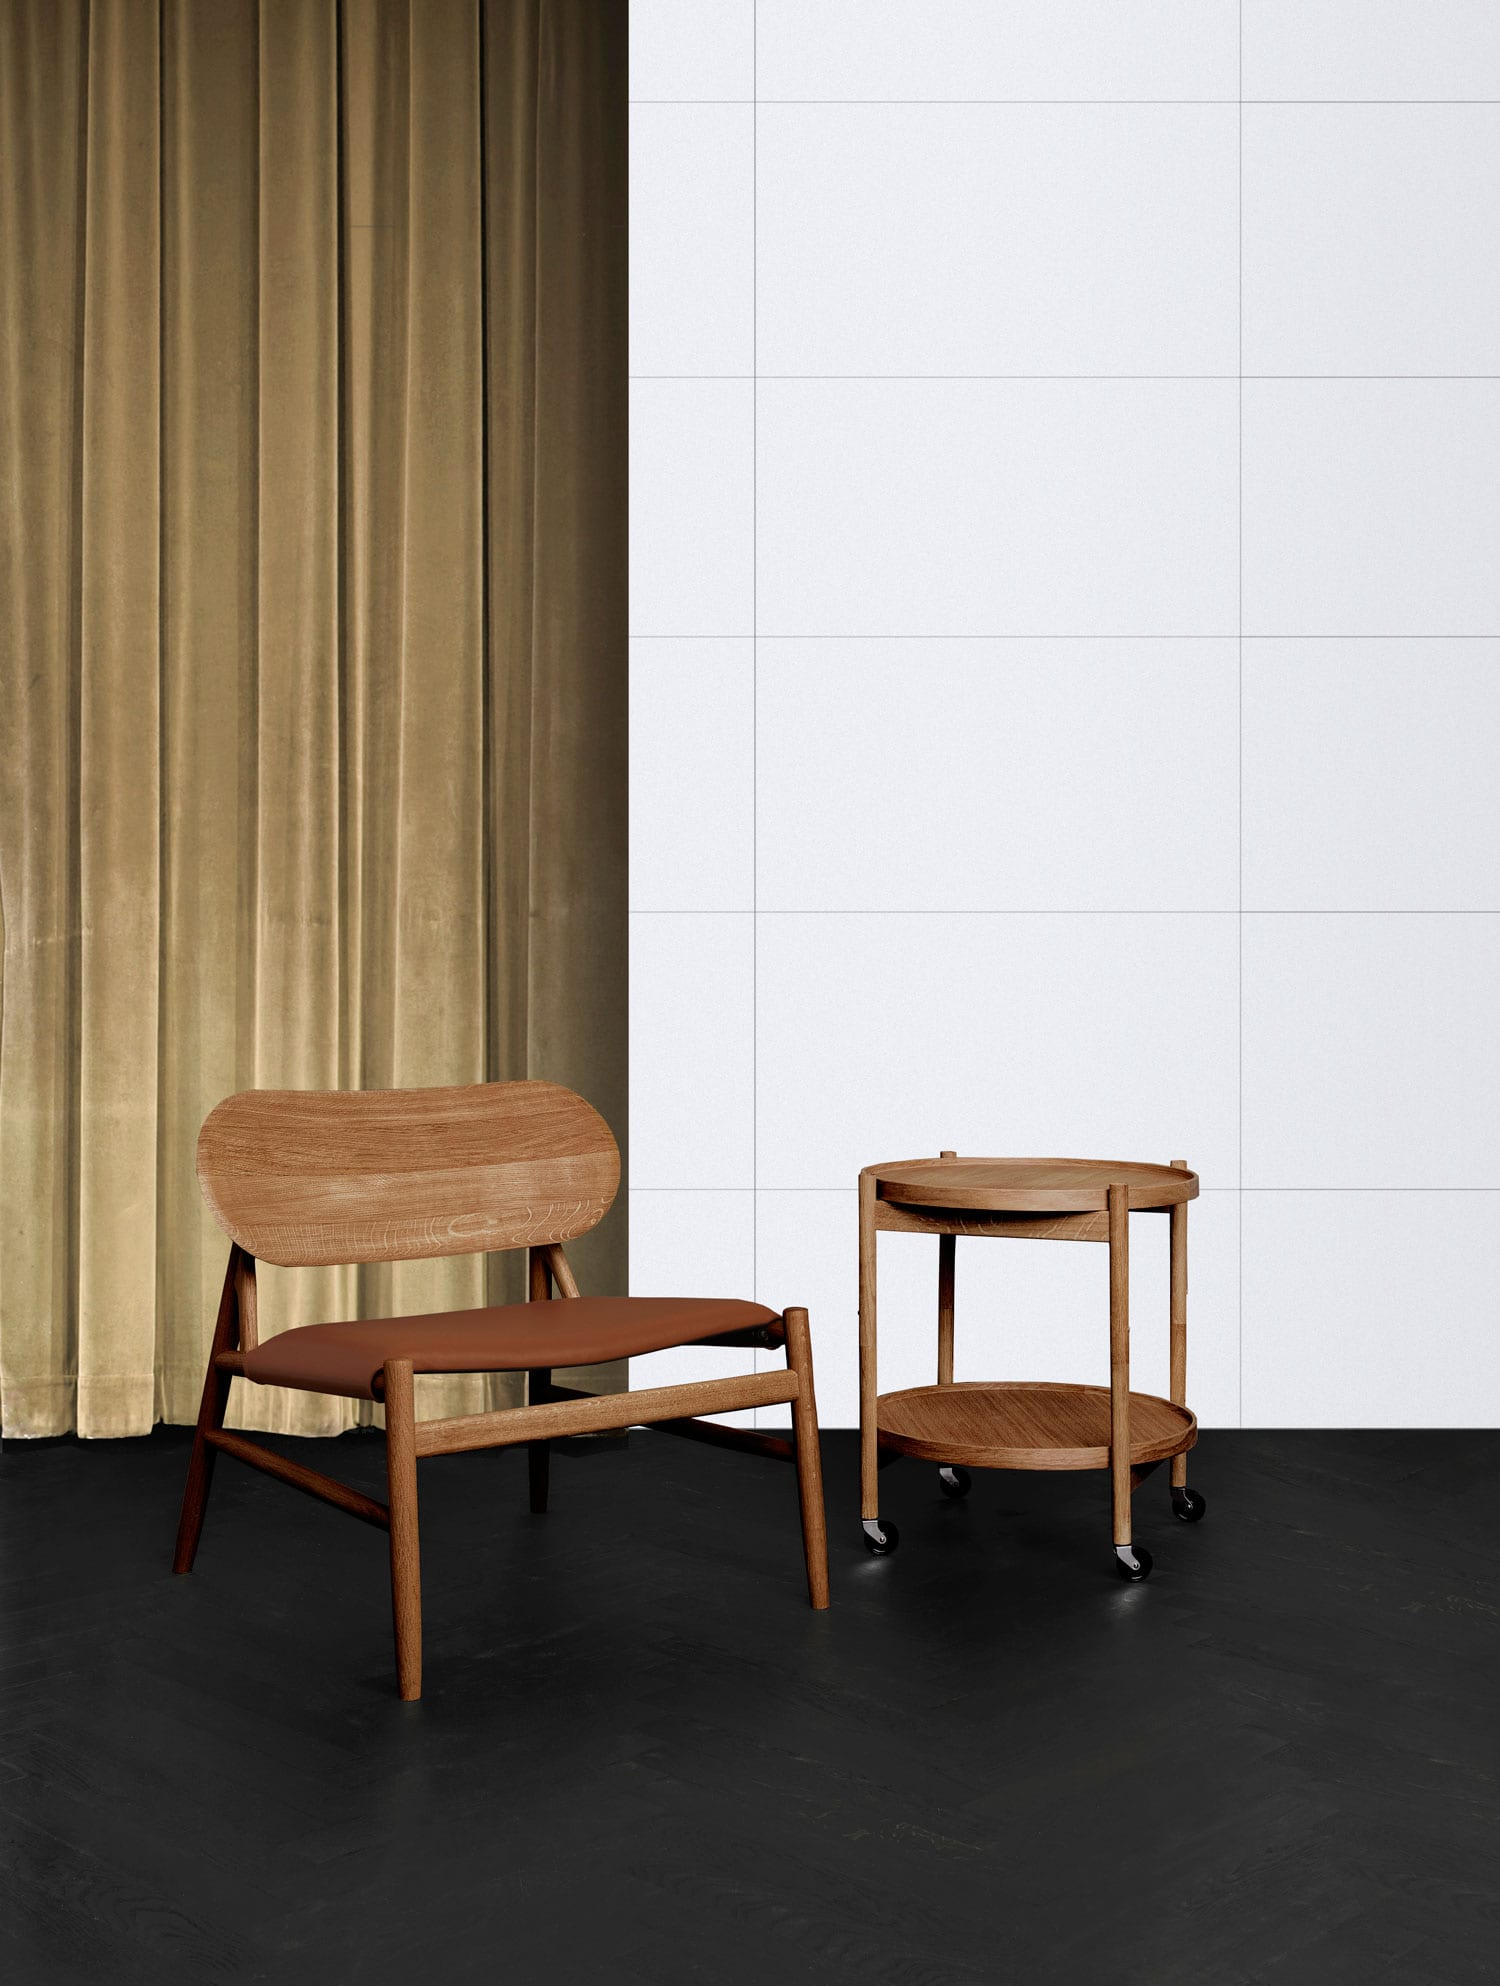 Ferdinand Chair by OEO Studio for Brdr Kruger at IMM Cologne 2018 | Yellowtrace